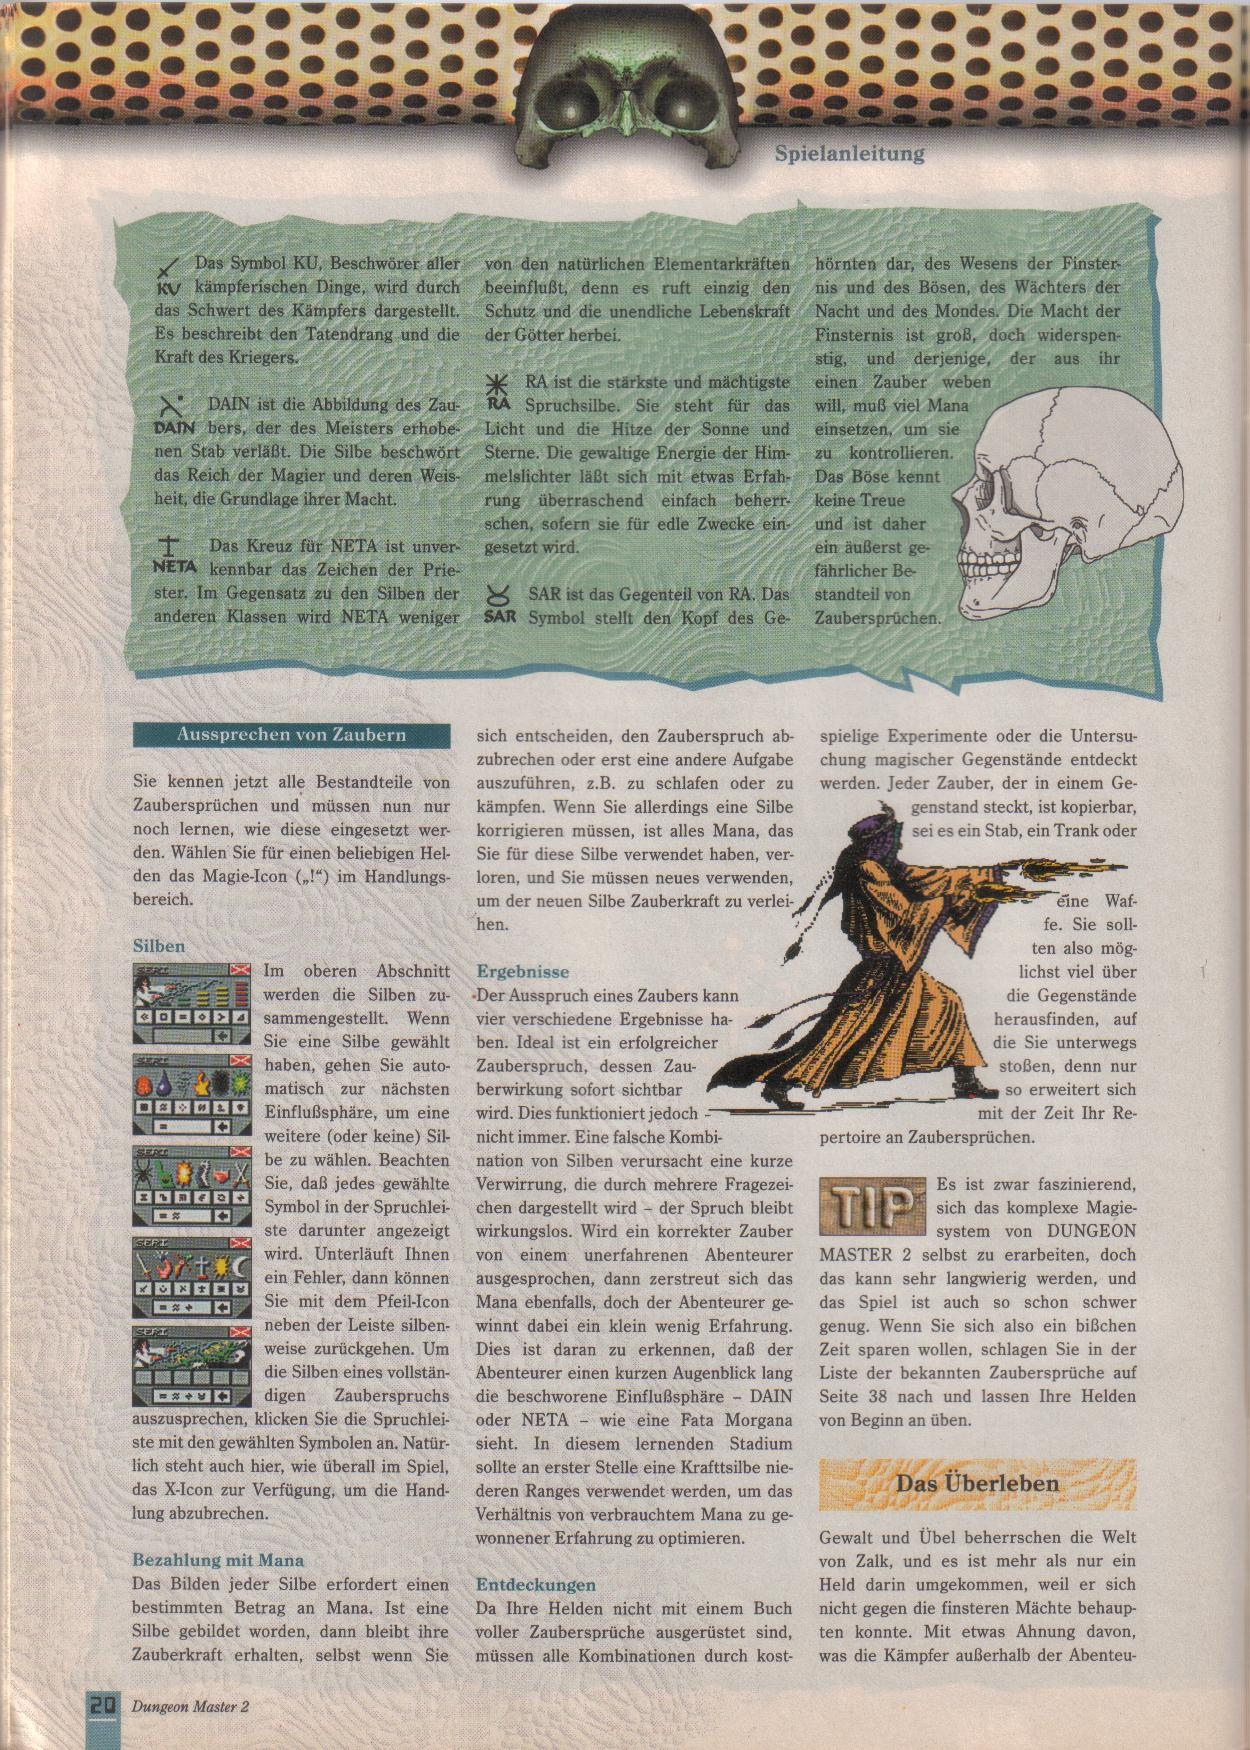 Dungeon Master II for PC (German, Best Seller Games) Page 20